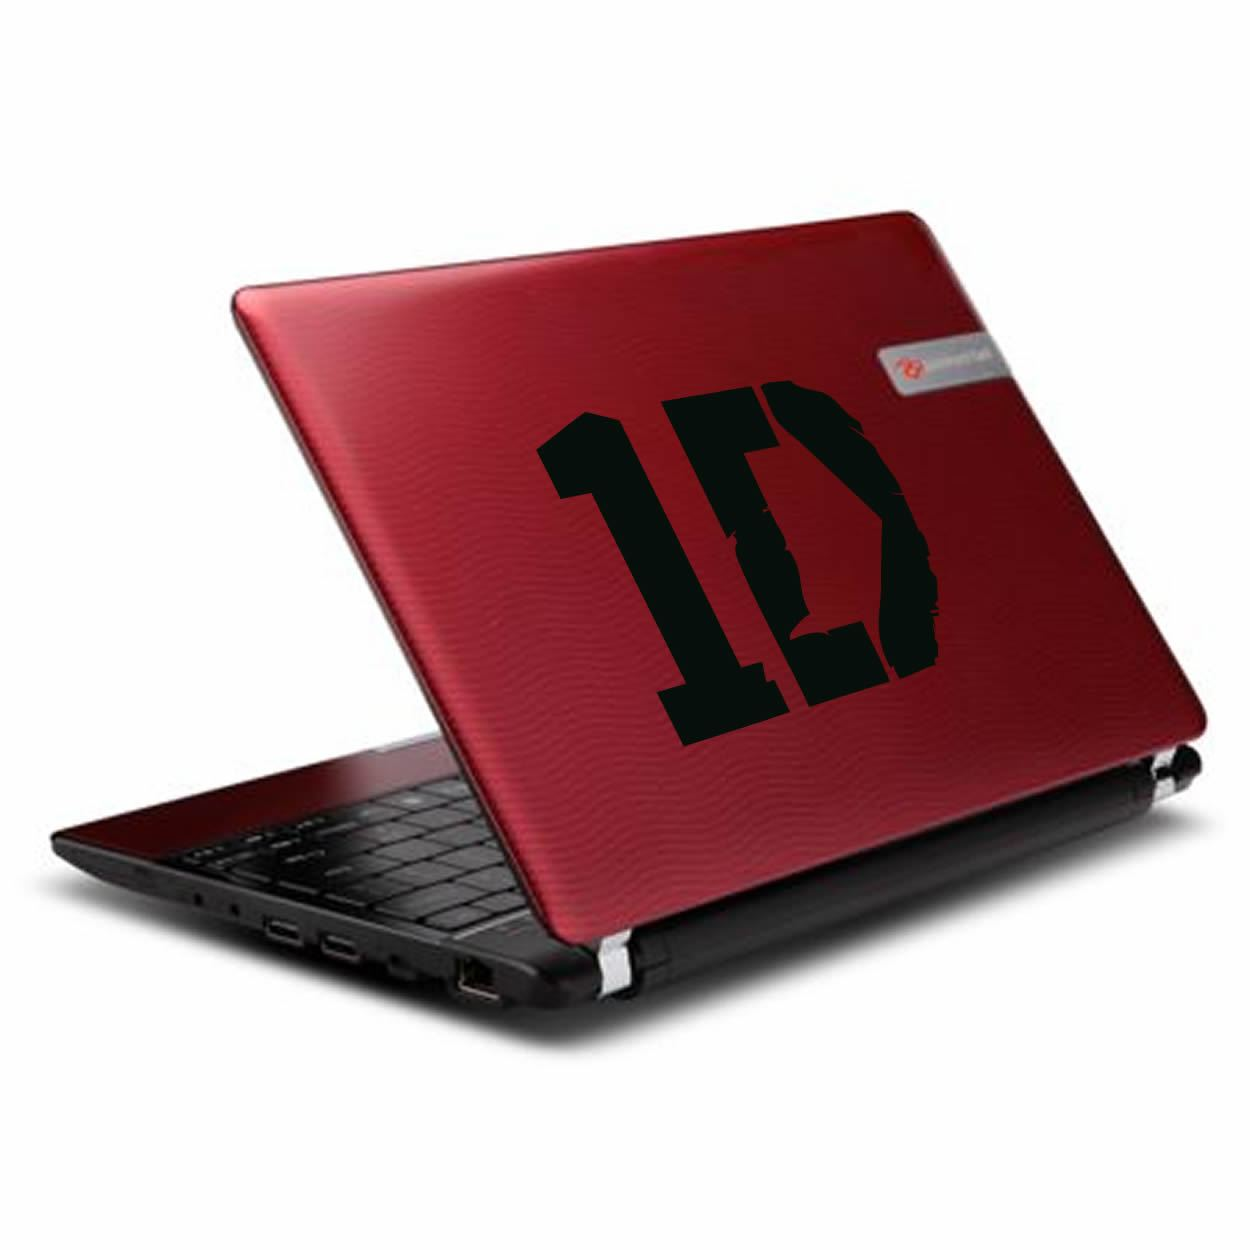 1D One Direction Bumper/Phone/Laptop Sticker - Apex Stickers